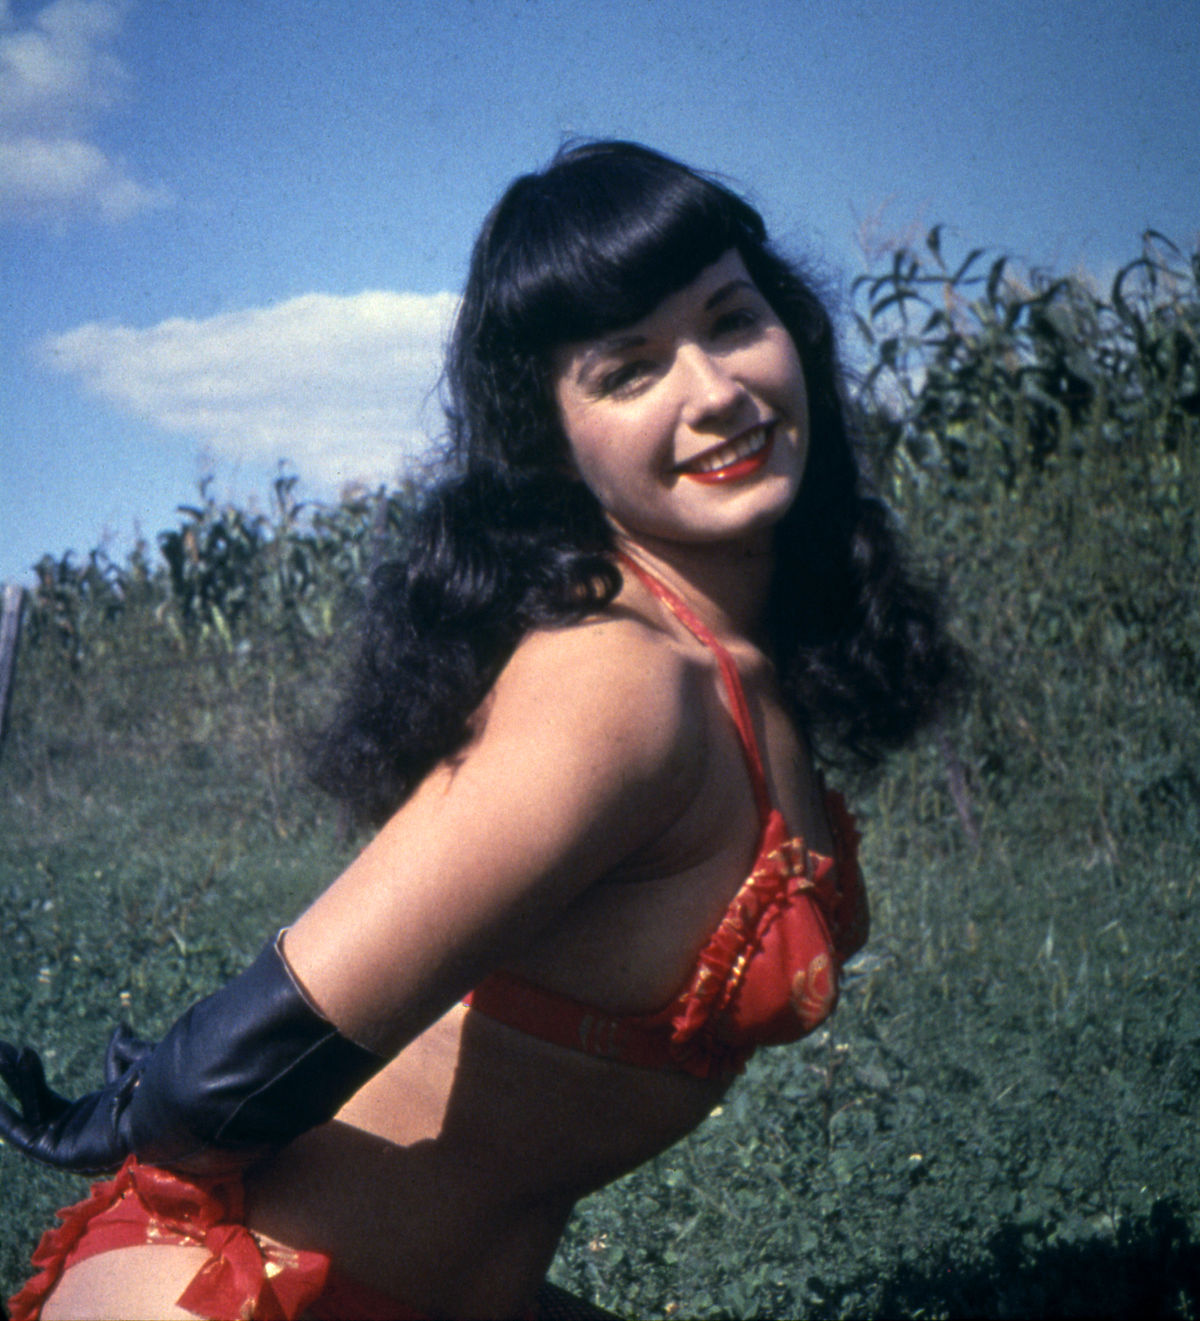 bettie page last interviewbettie page reveals all, bettie page clothing, bettie page store, bettie page shoes, bettie page film, bettie page hairstyle, bettie page gif, bettie page art, bettie page quotes, bettie page weight and height, bettie page last interview, bettie page legs, bettie page instagram, bettie page dance, bettie page online, bettie page old photos, bettie page private, bettie page 2008, bettie page vk, bettie page pin up queen